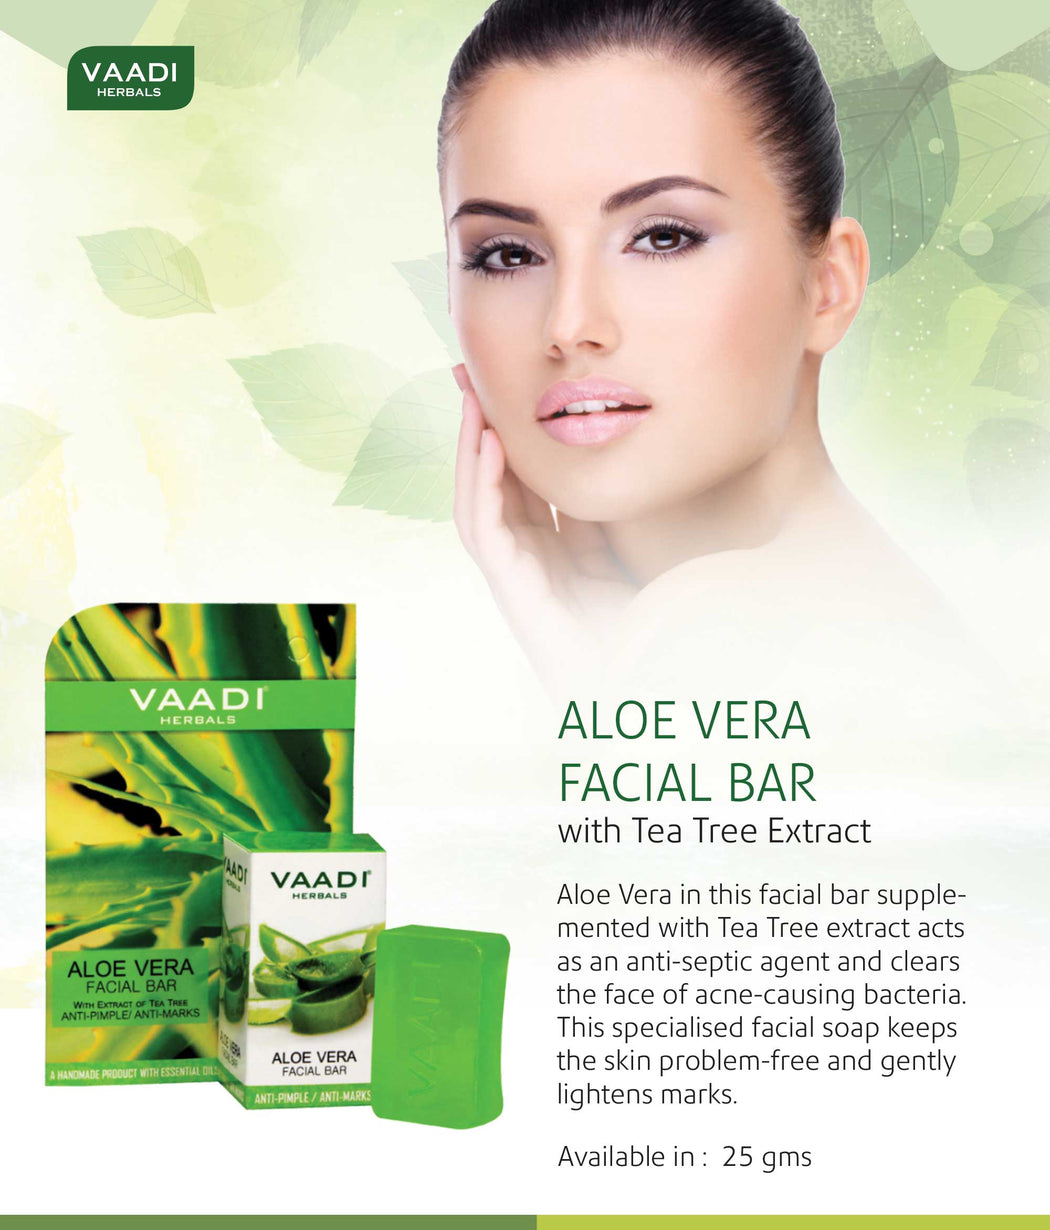 Organic Aloe Vera Facial Bar with Tea Tree and Honey - Reduces Acne - Keeps Skin Infection Free (25 gms/0.9 oz)